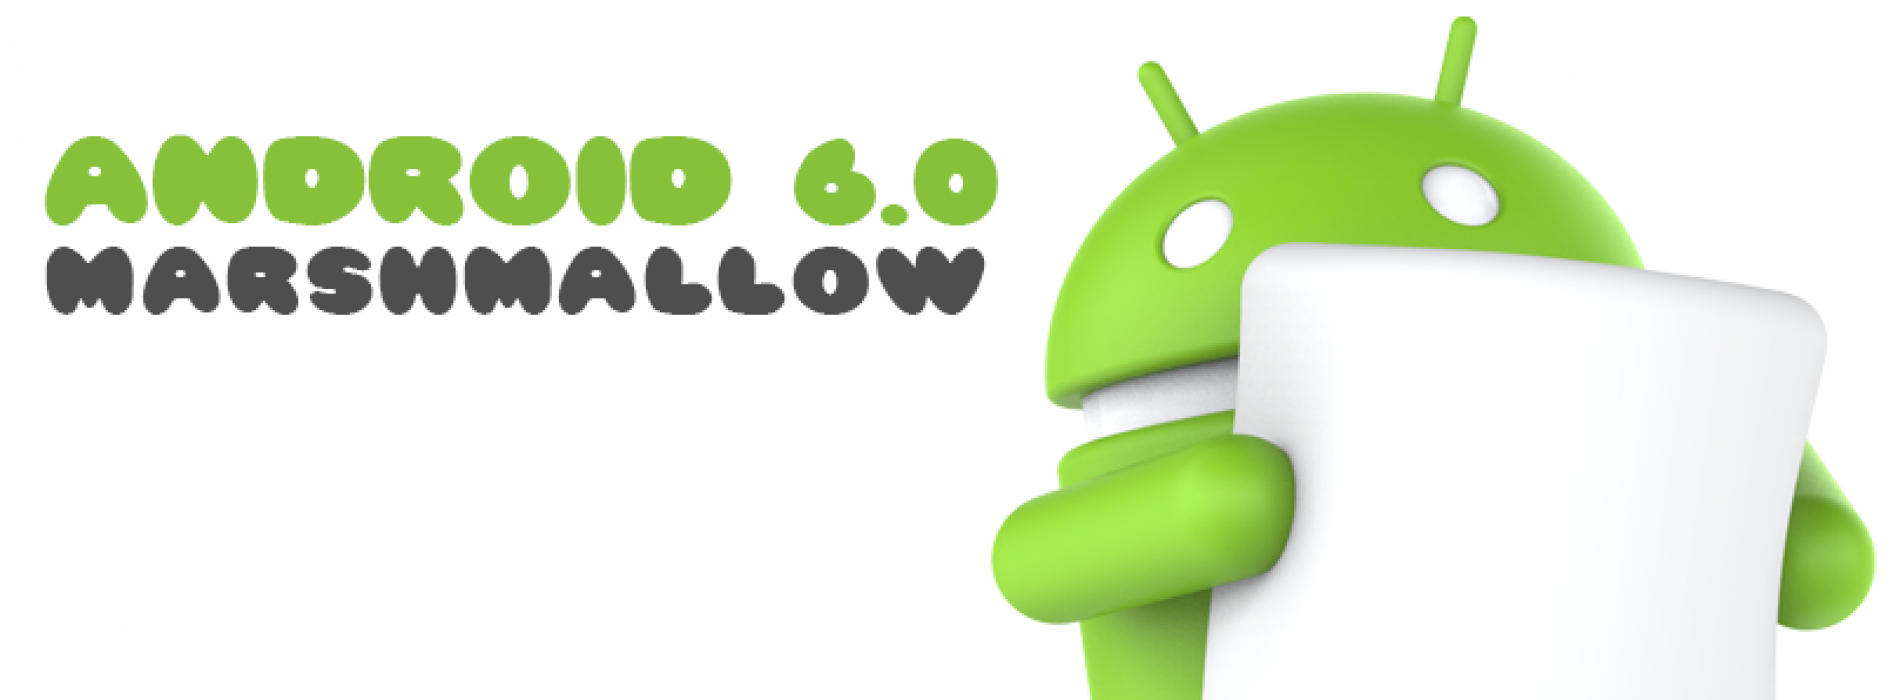 10 New Features Inside Android 6.0 Marshmallow